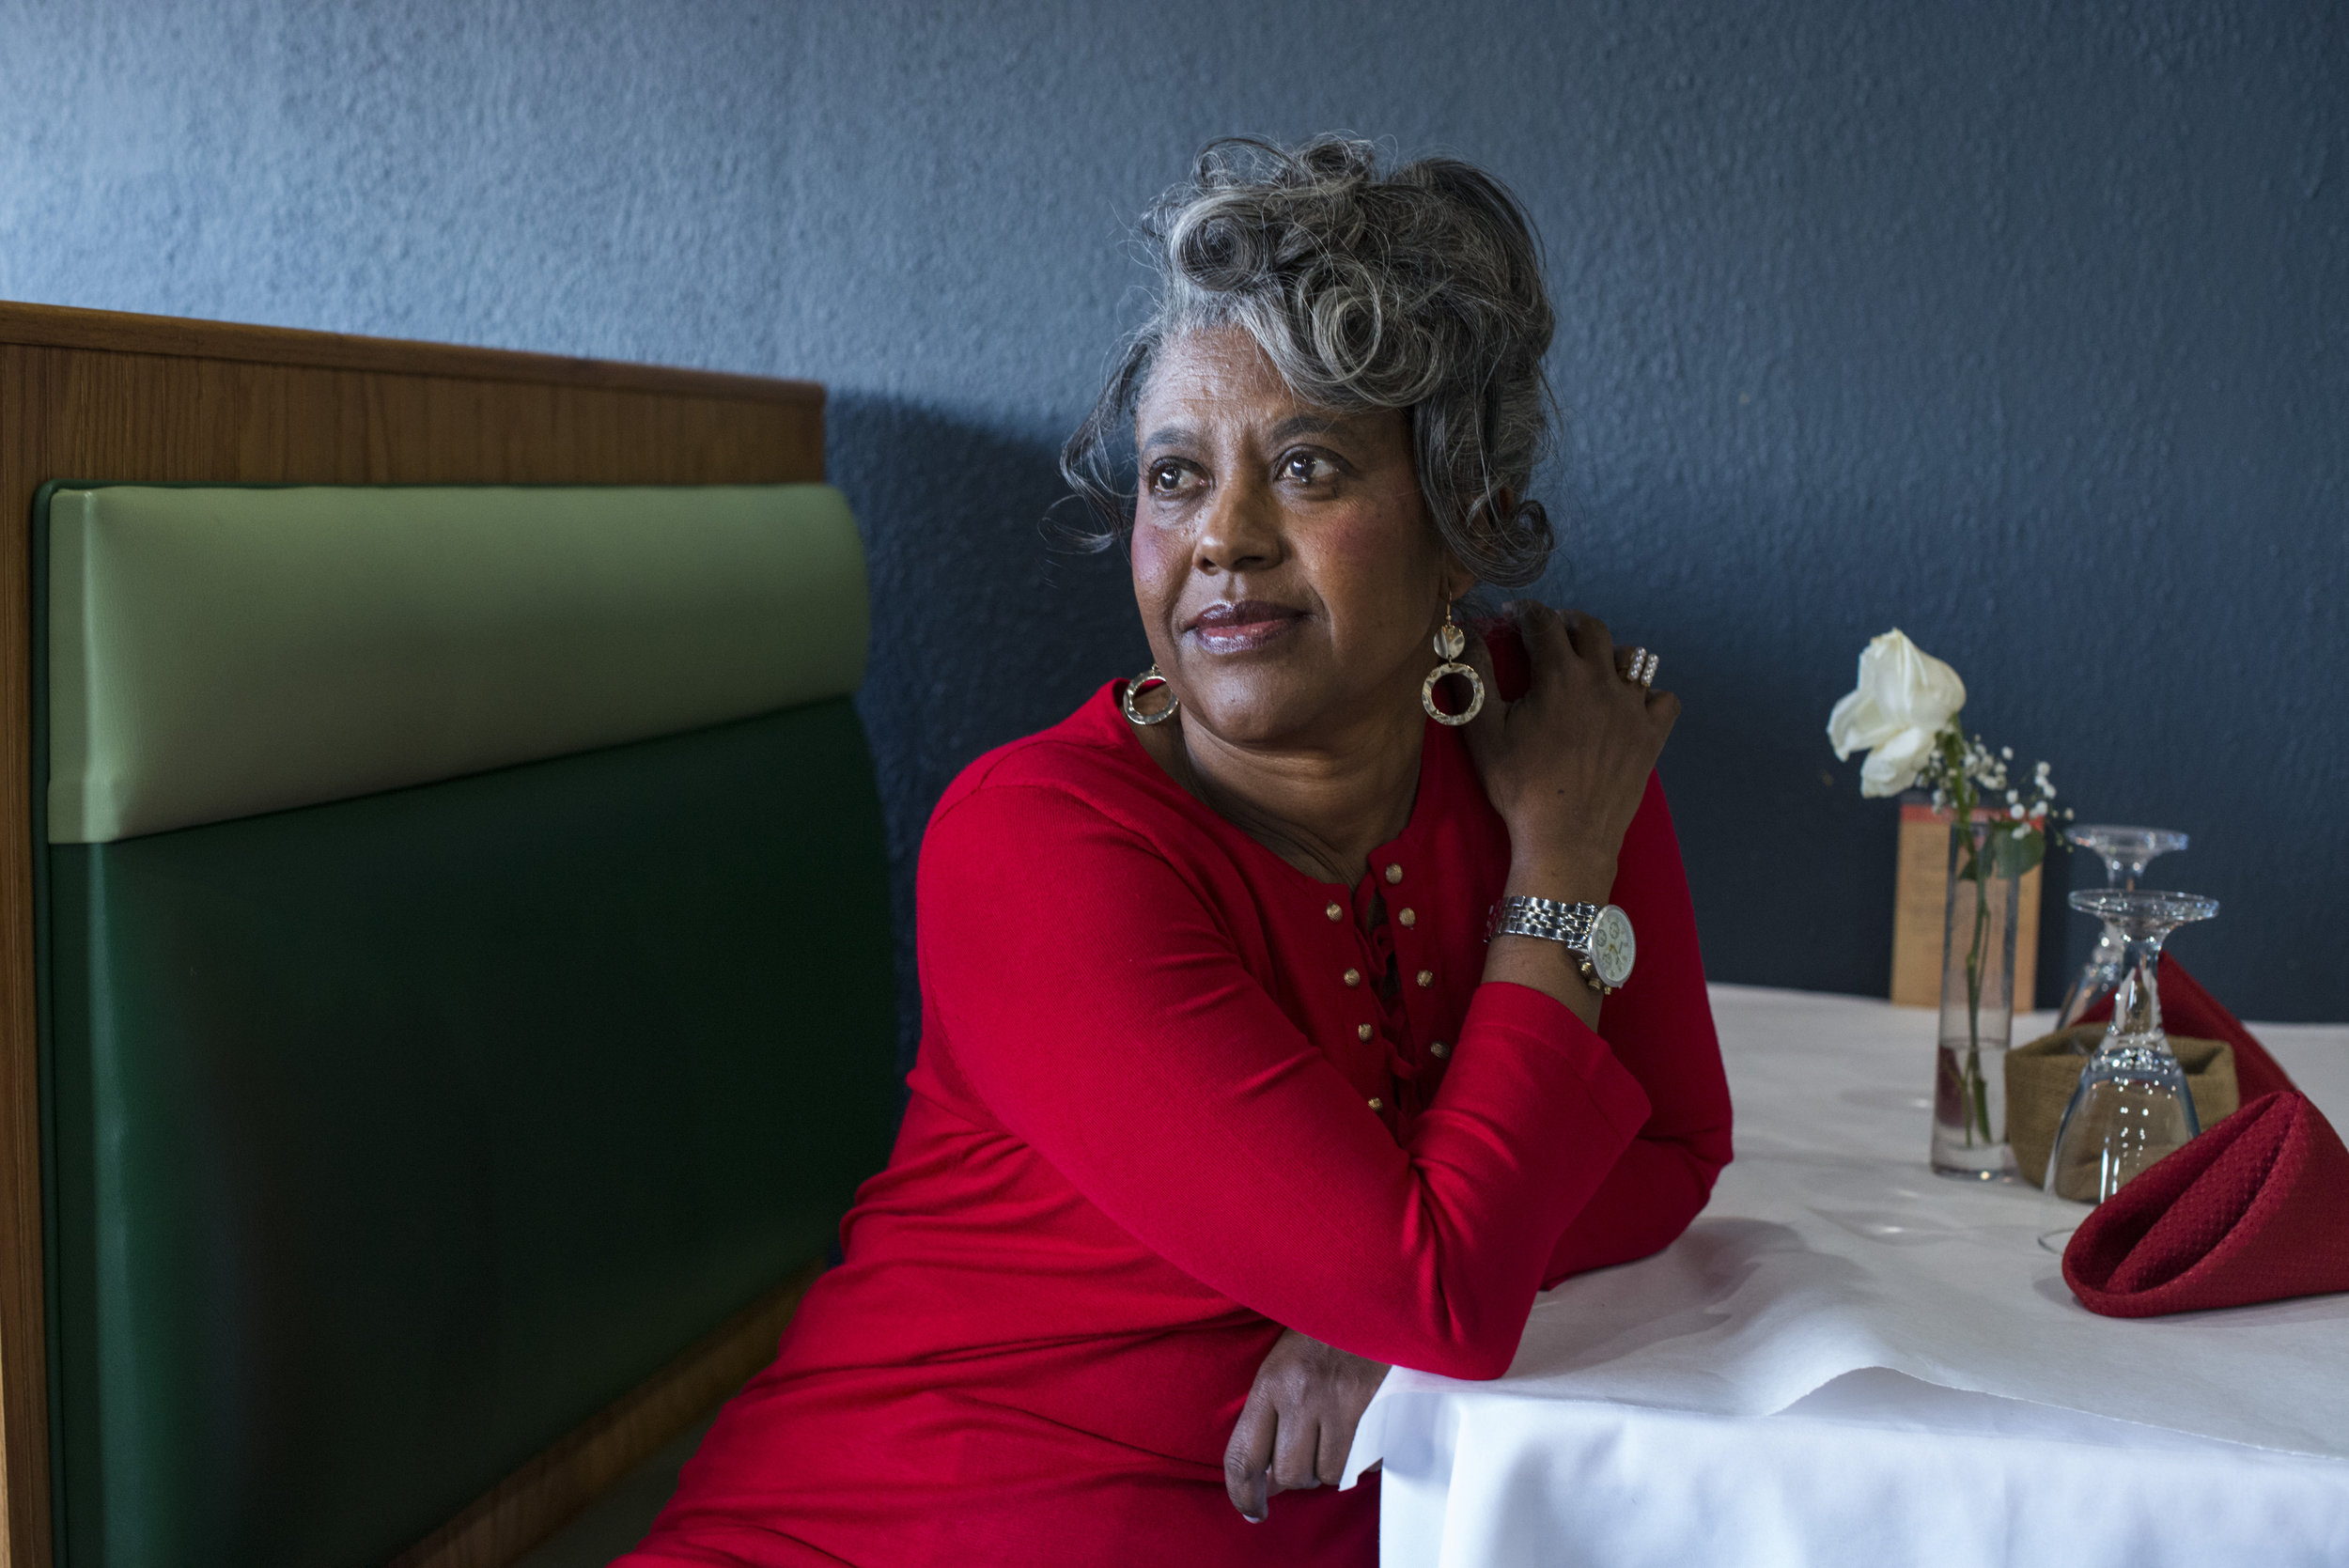 Meskerem Gevreyohannes, 58, of West Bloomfield, Mich., at her restaurant, Taste of Ethiopia, which has operated for 12 years in Southfield, Mich., on Tuesday, November 28, 2017.